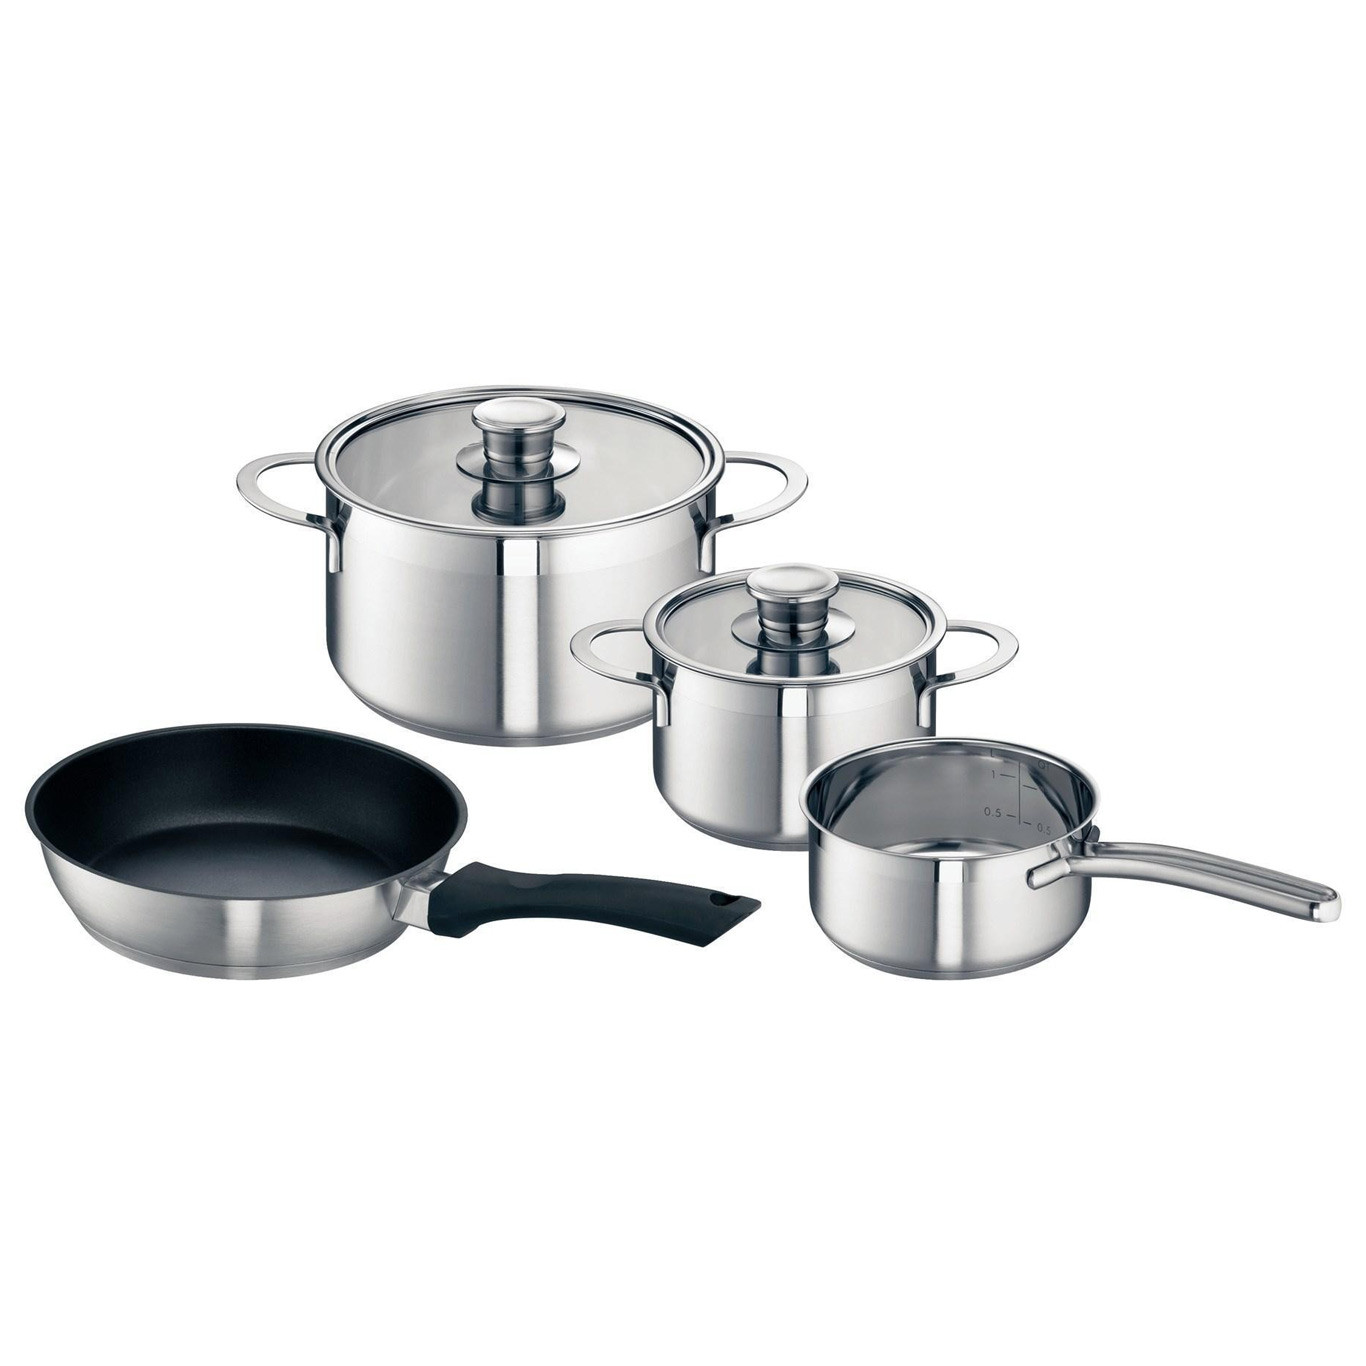 Neff Z9442X0 4 Piece Pan Set For Induction Hobs